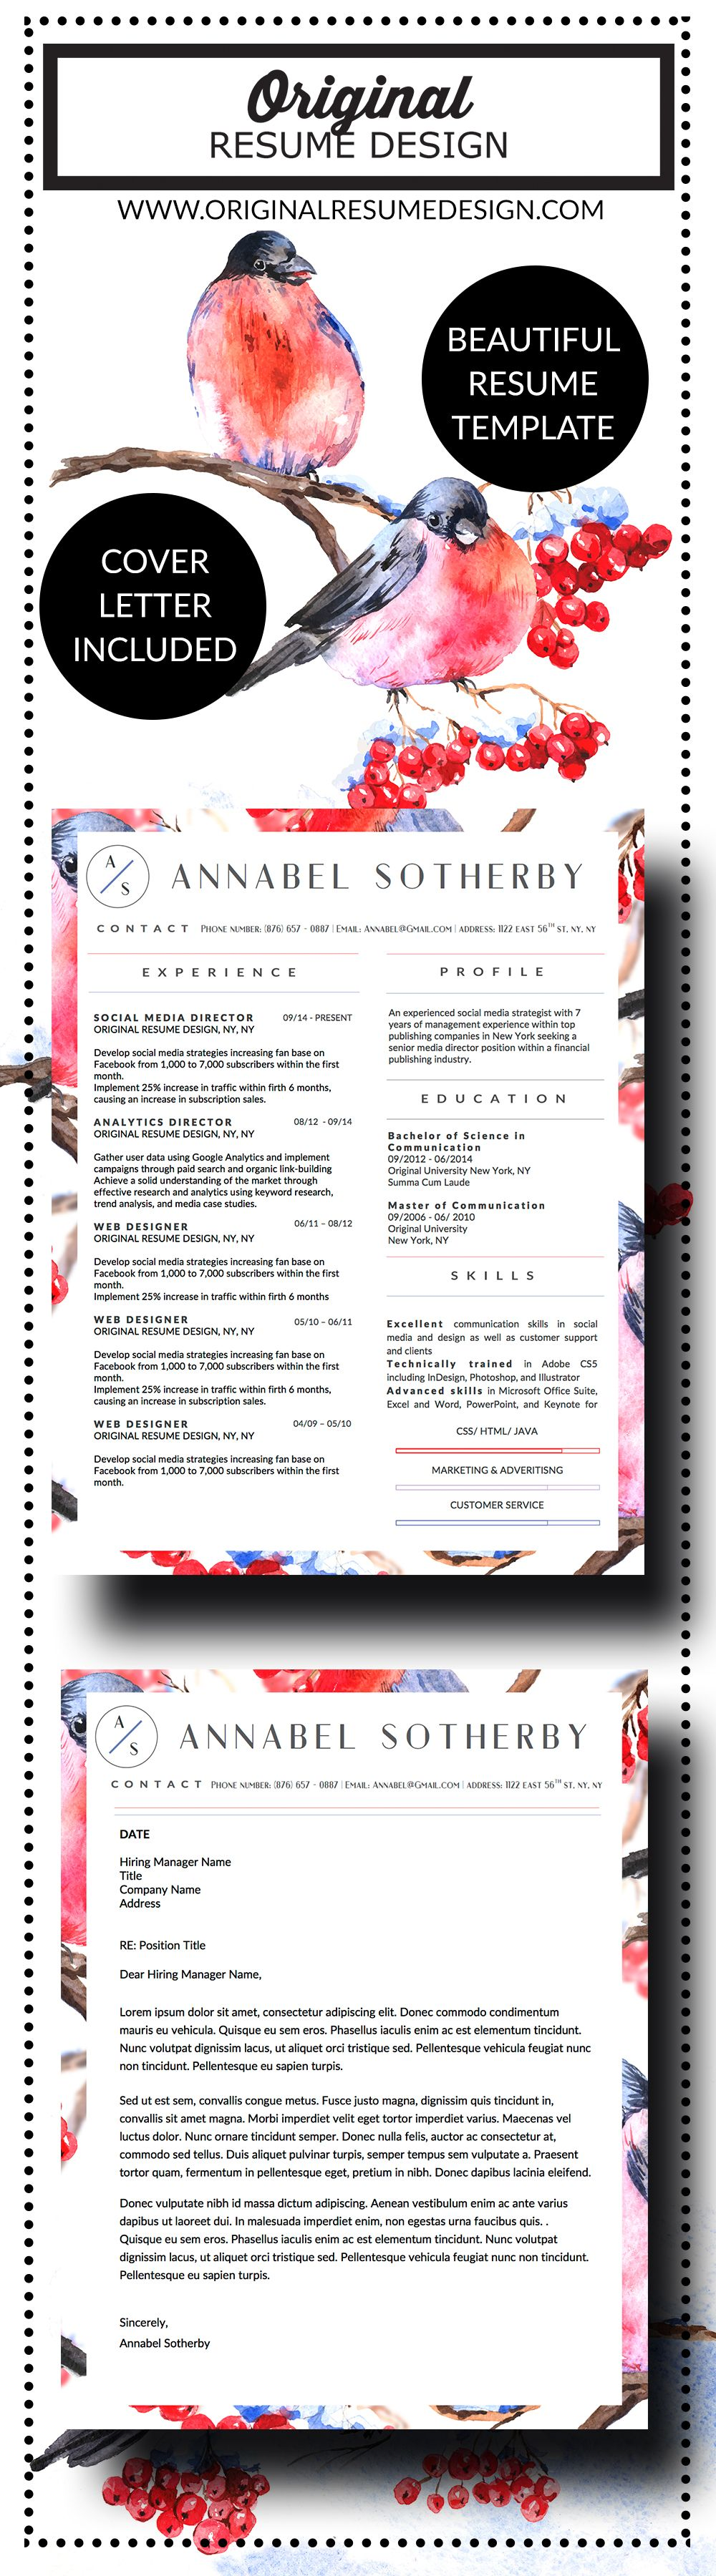 Annabel Sotherby Beautiful Resume And Cover Letter Template For